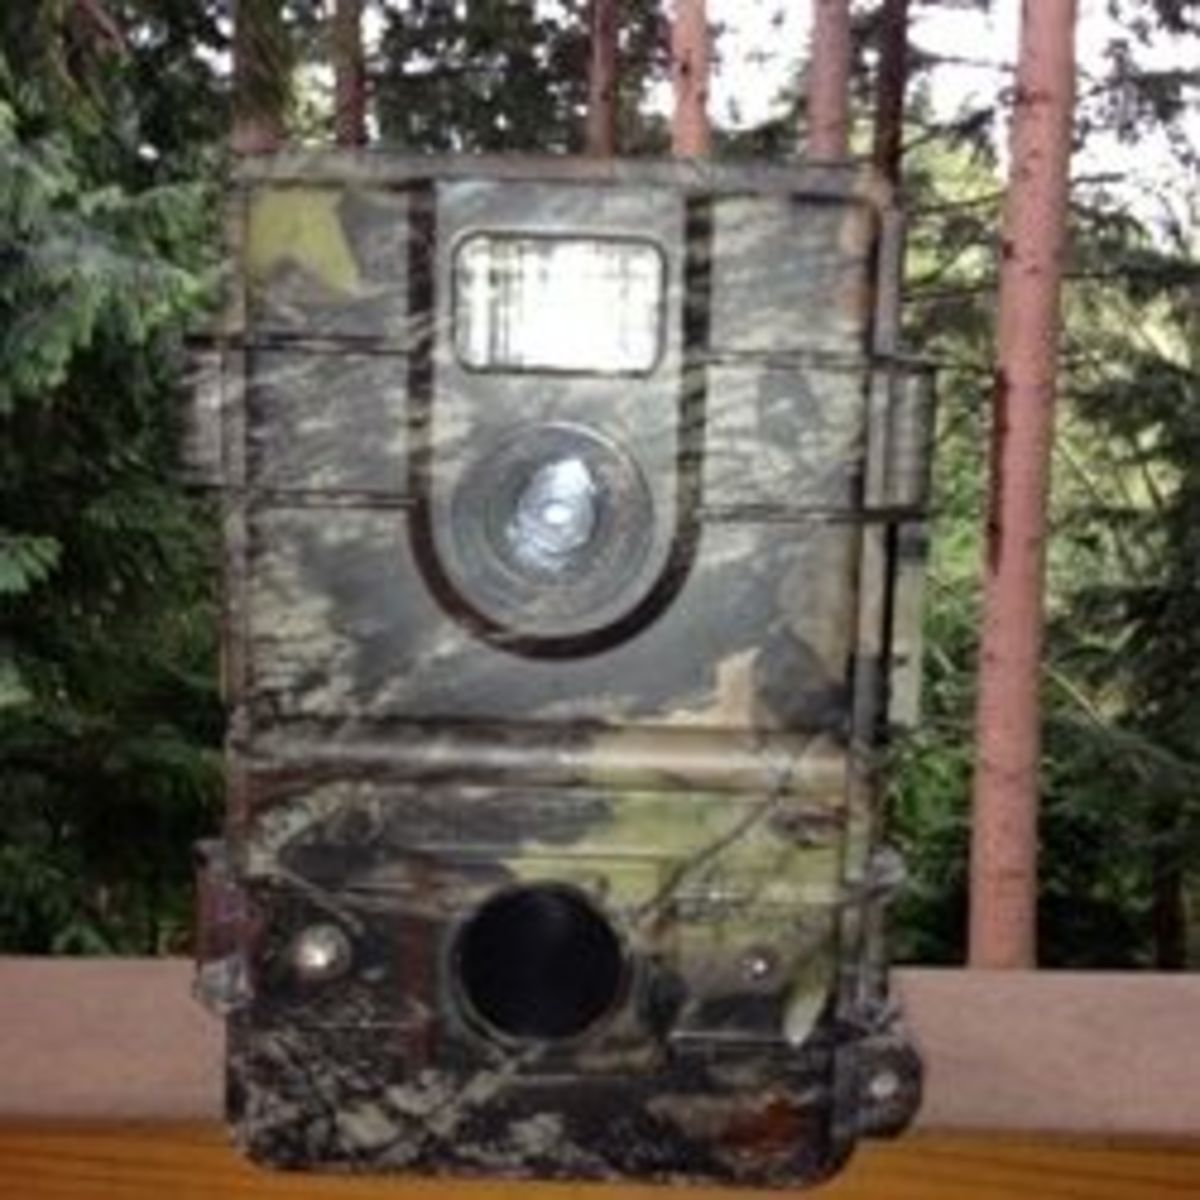 A Motion-Activated Trail Camera